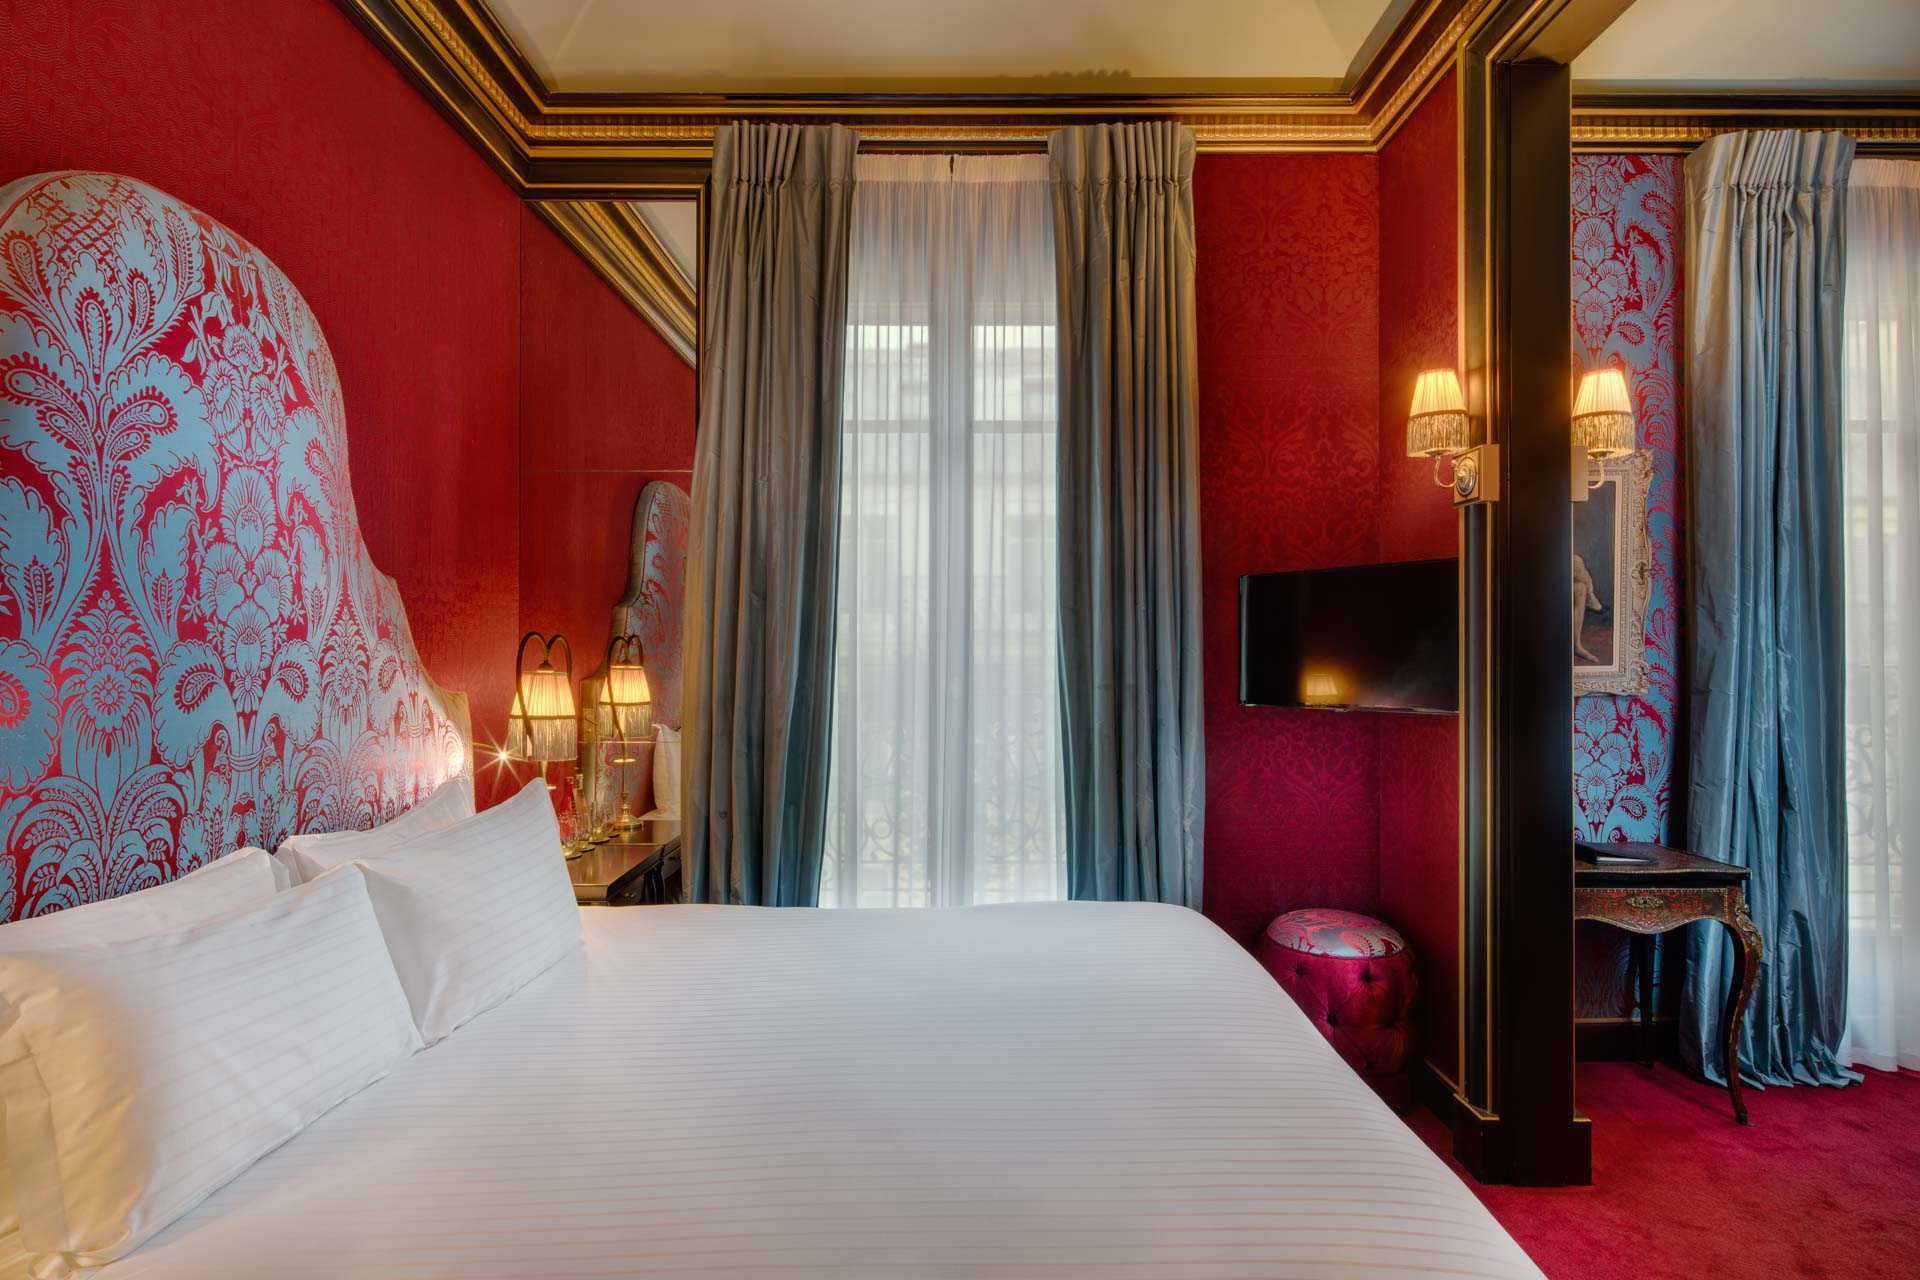 Luxury boutique hotel maison souquet paris jan prerovsky for Luxury hotel boutique